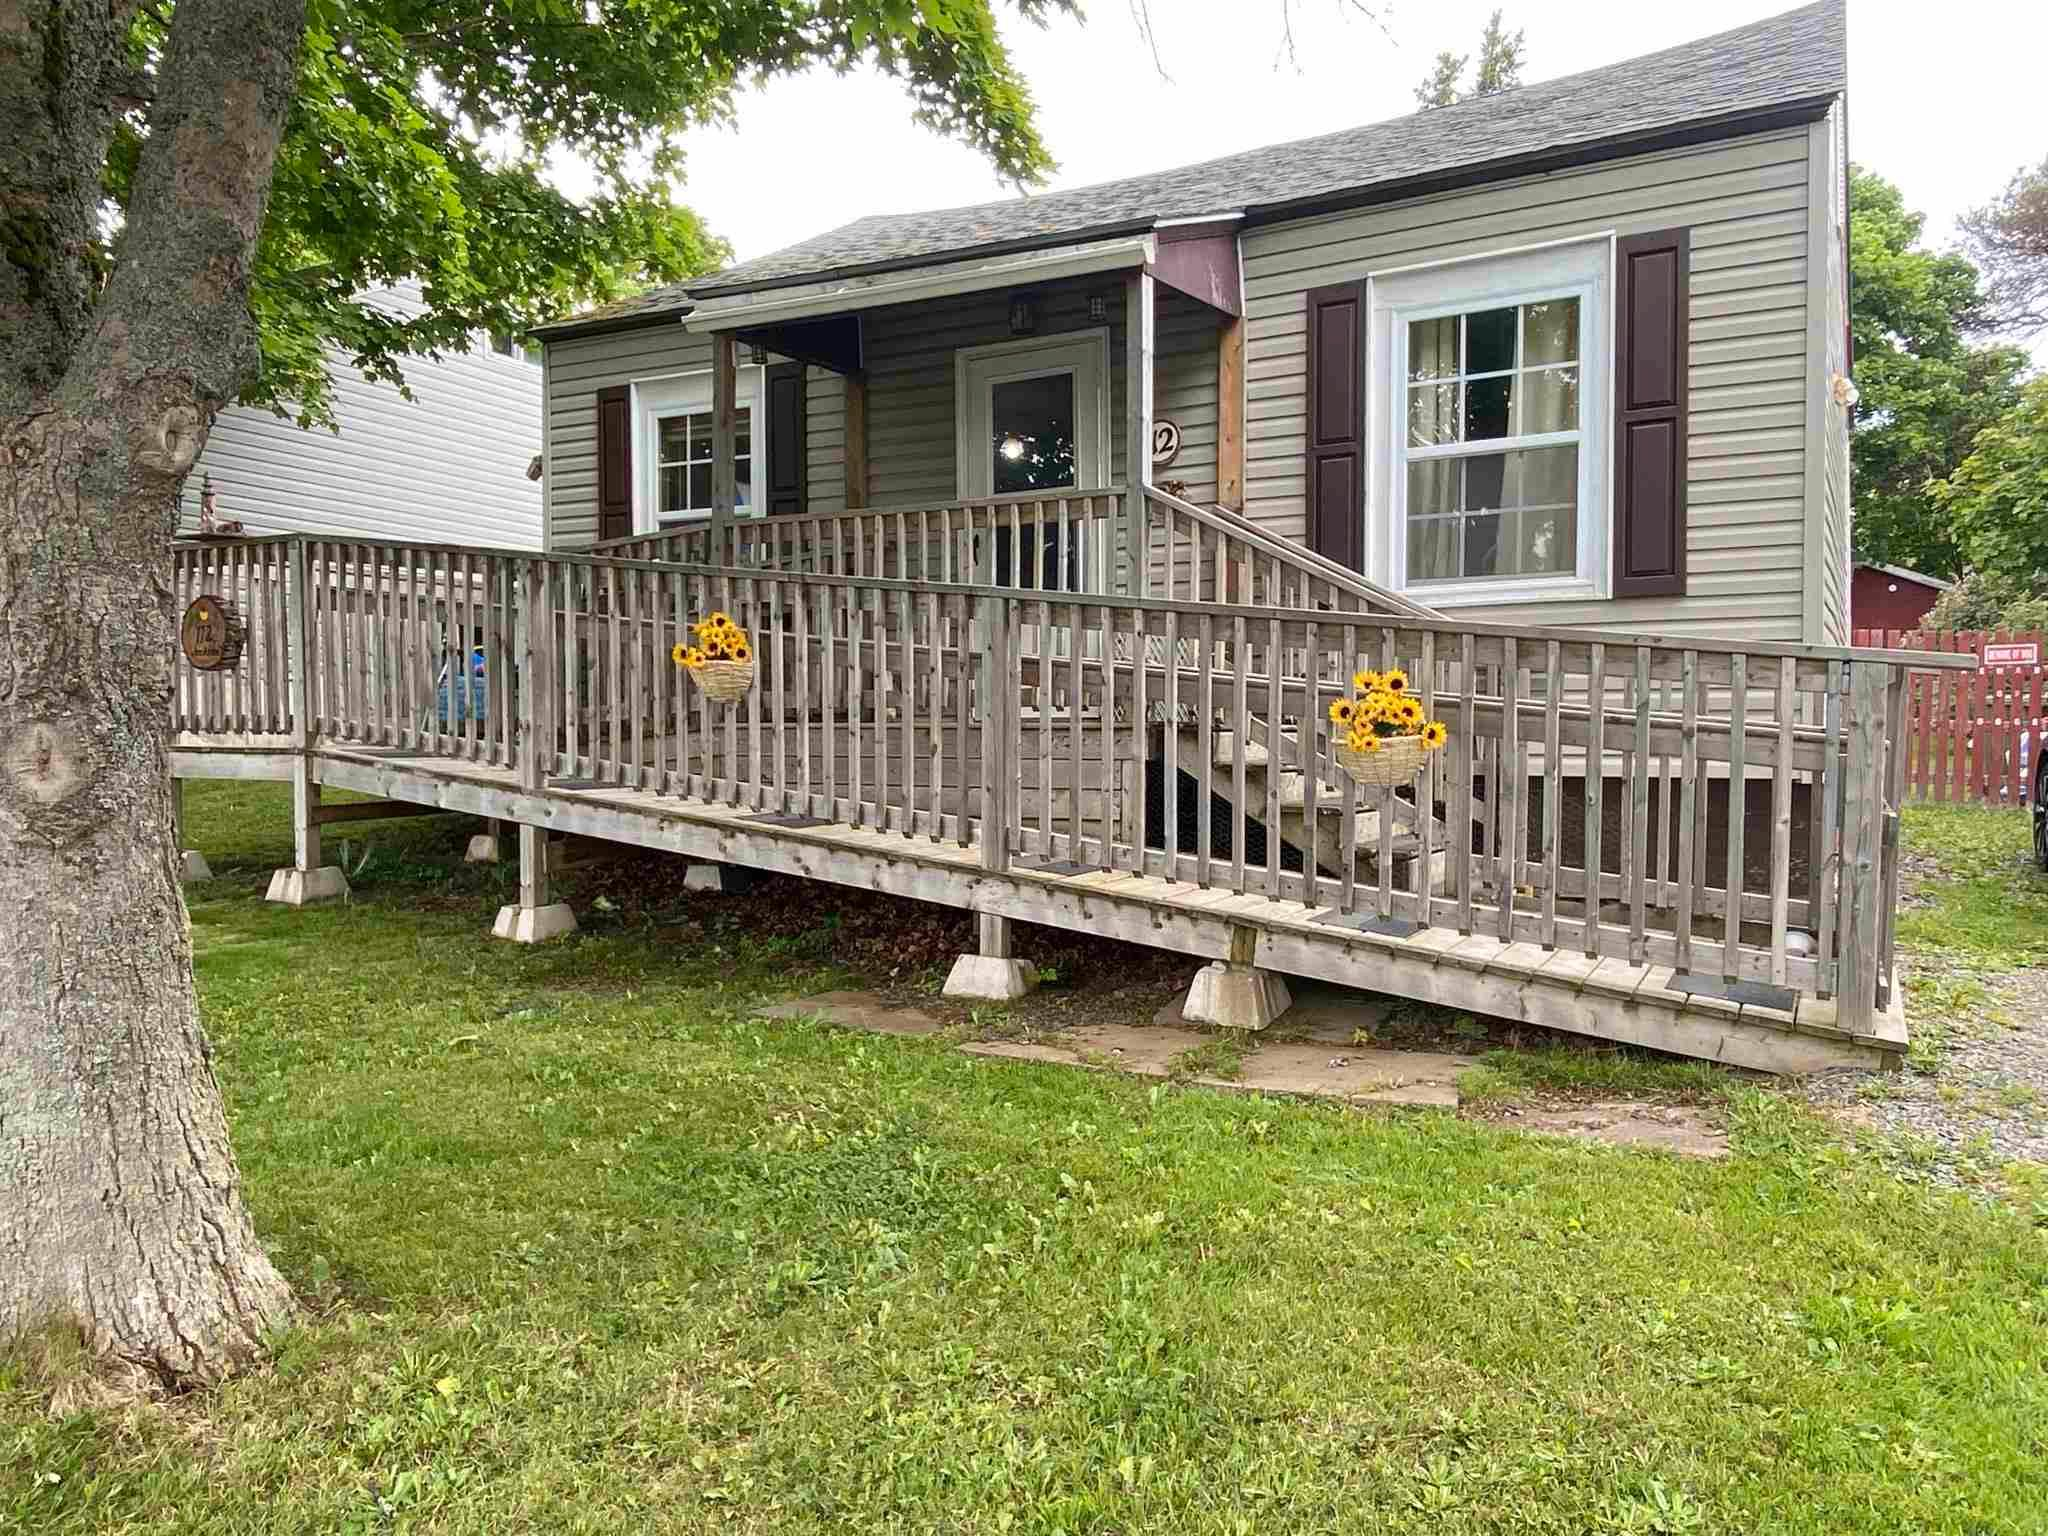 Main Photo: 112 Chestnut Street in Pictou: 107-Trenton,Westville,Pictou Residential for sale (Northern Region)  : MLS®# 202115117